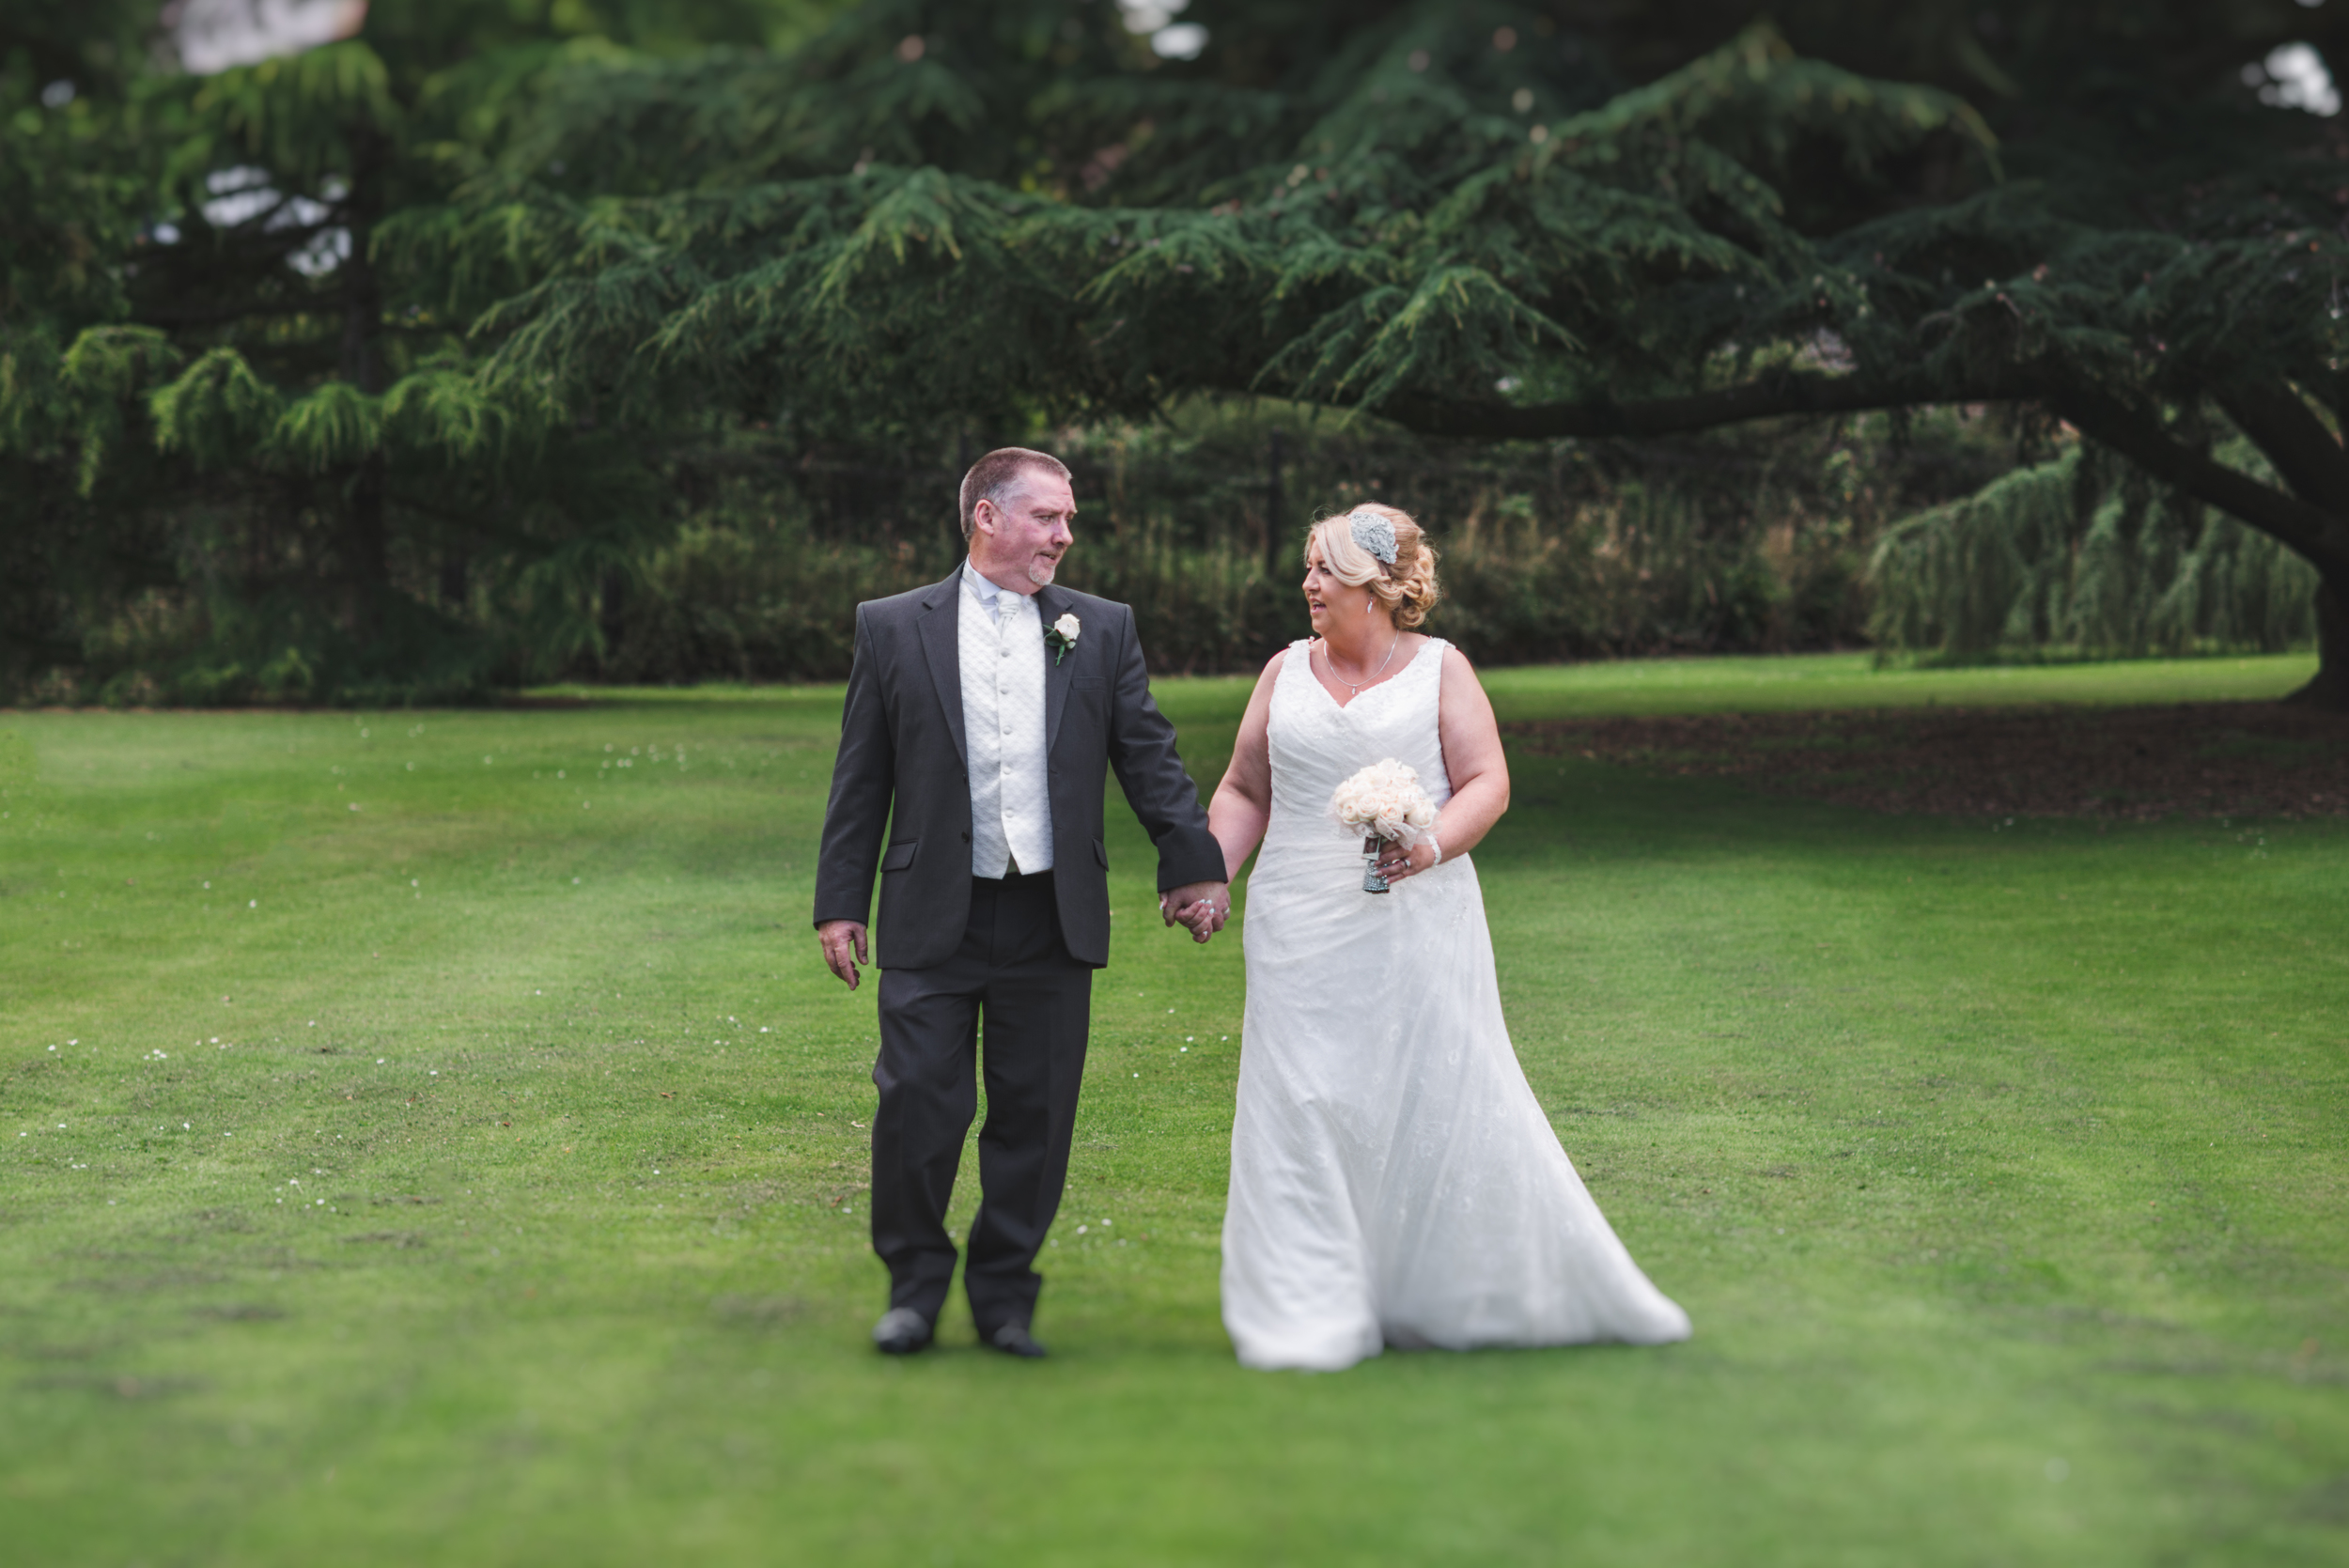 Stormont_Estate_Wedding_Photography_The_BrIde_and_Groom